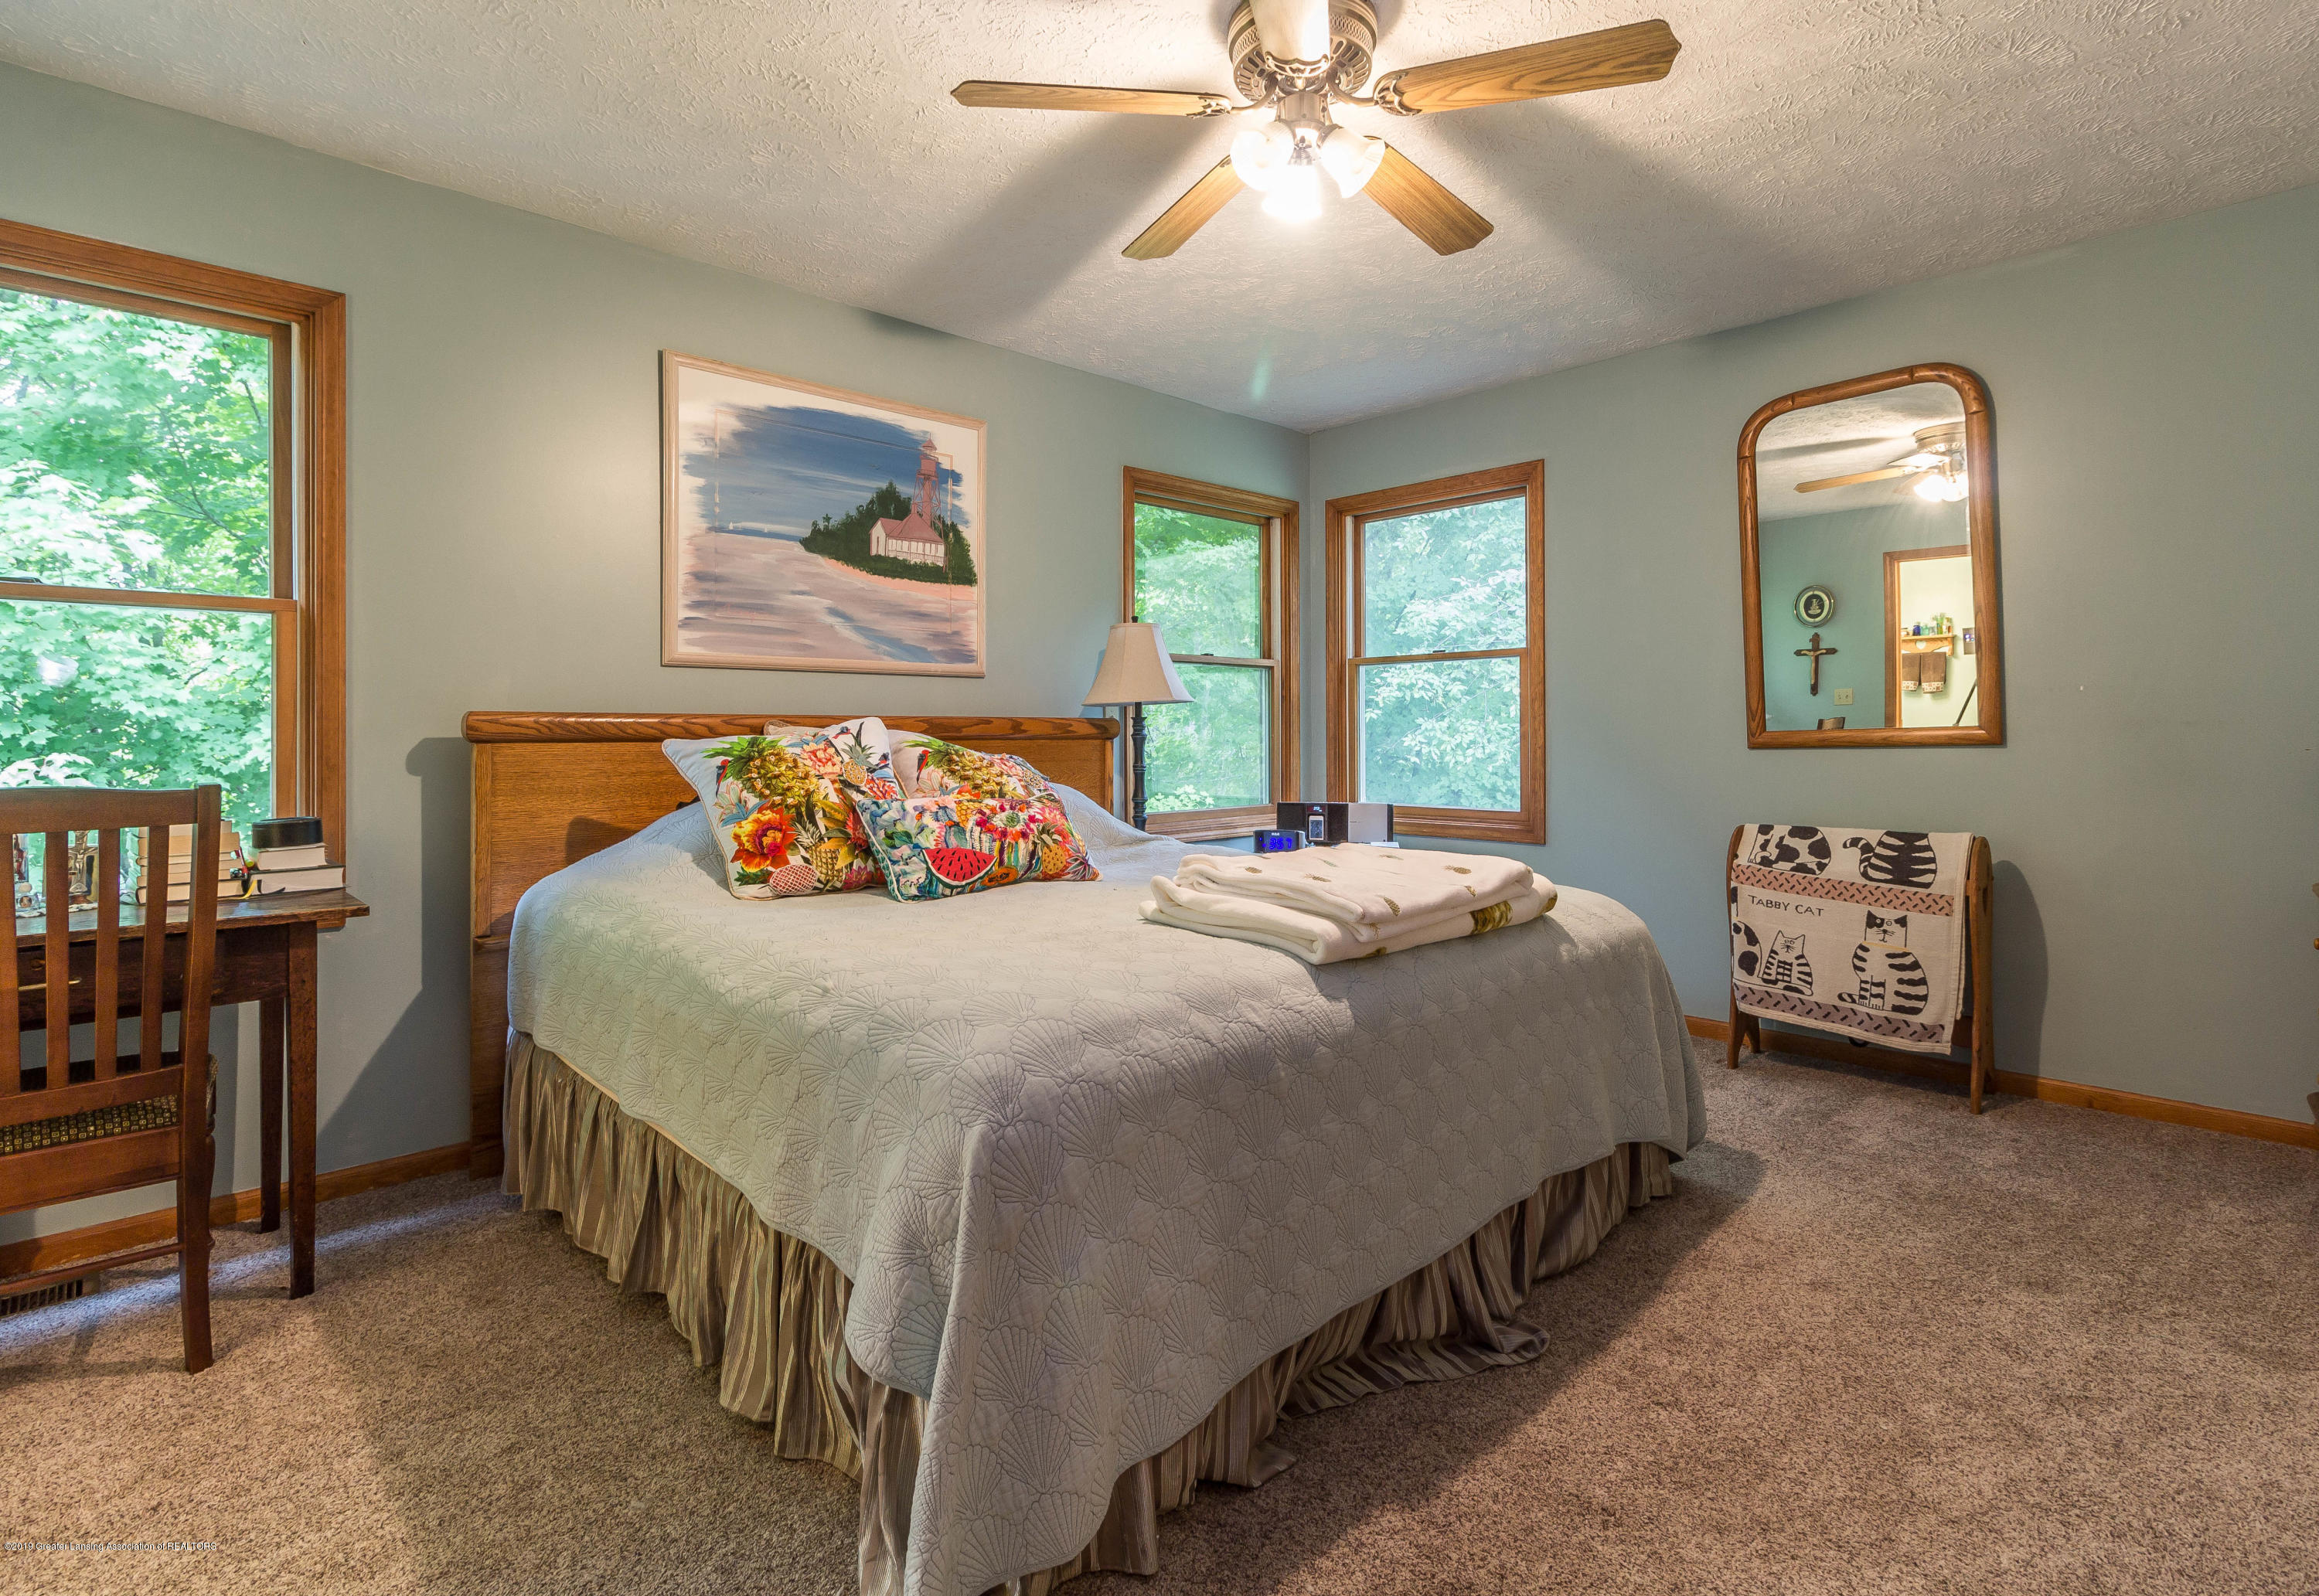 2051 Almond Rd - Bedroom - 14